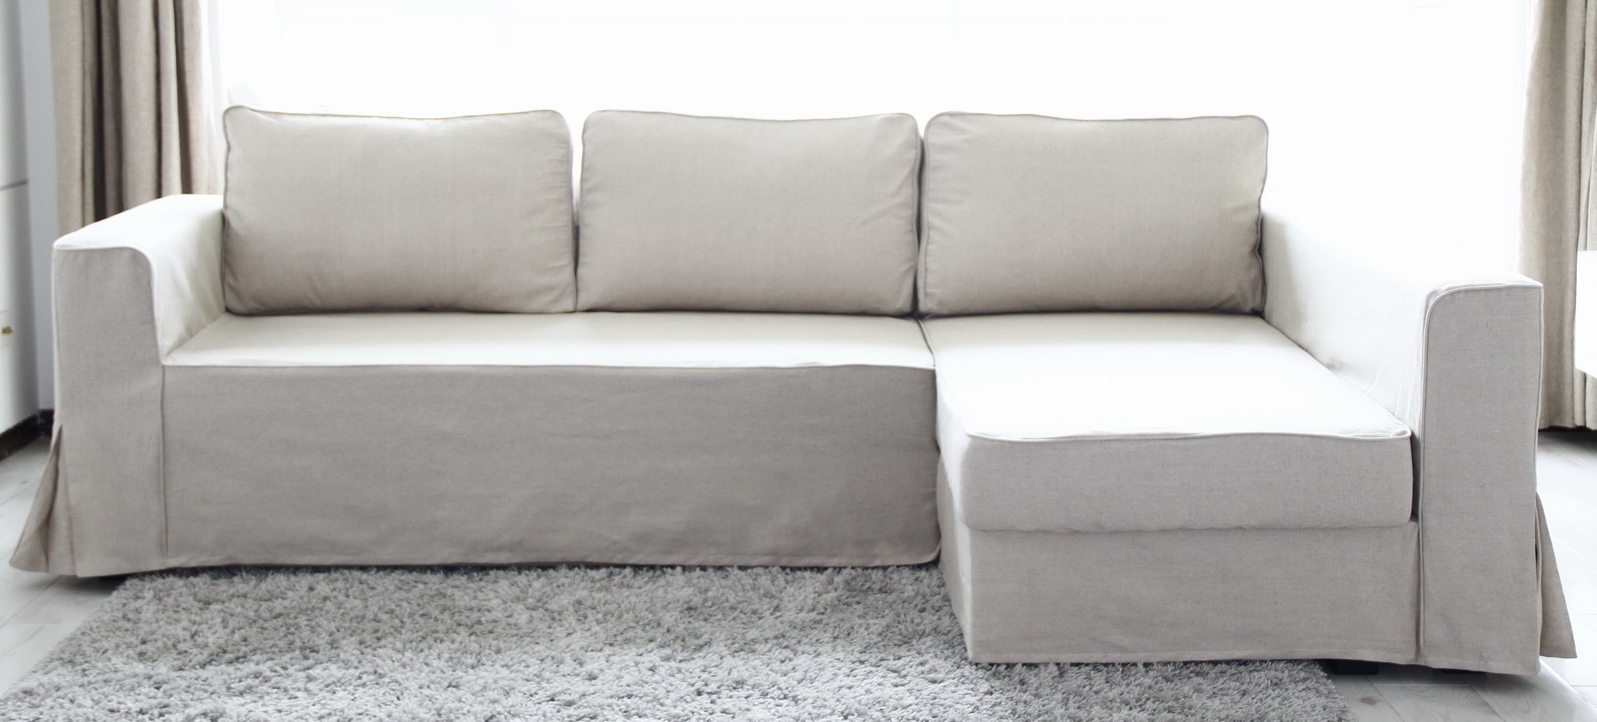 Well Known Loose Fit Linen Manstad Sofa Slipcovers Now Available Within Manstad Sofas (View 17 of 20)